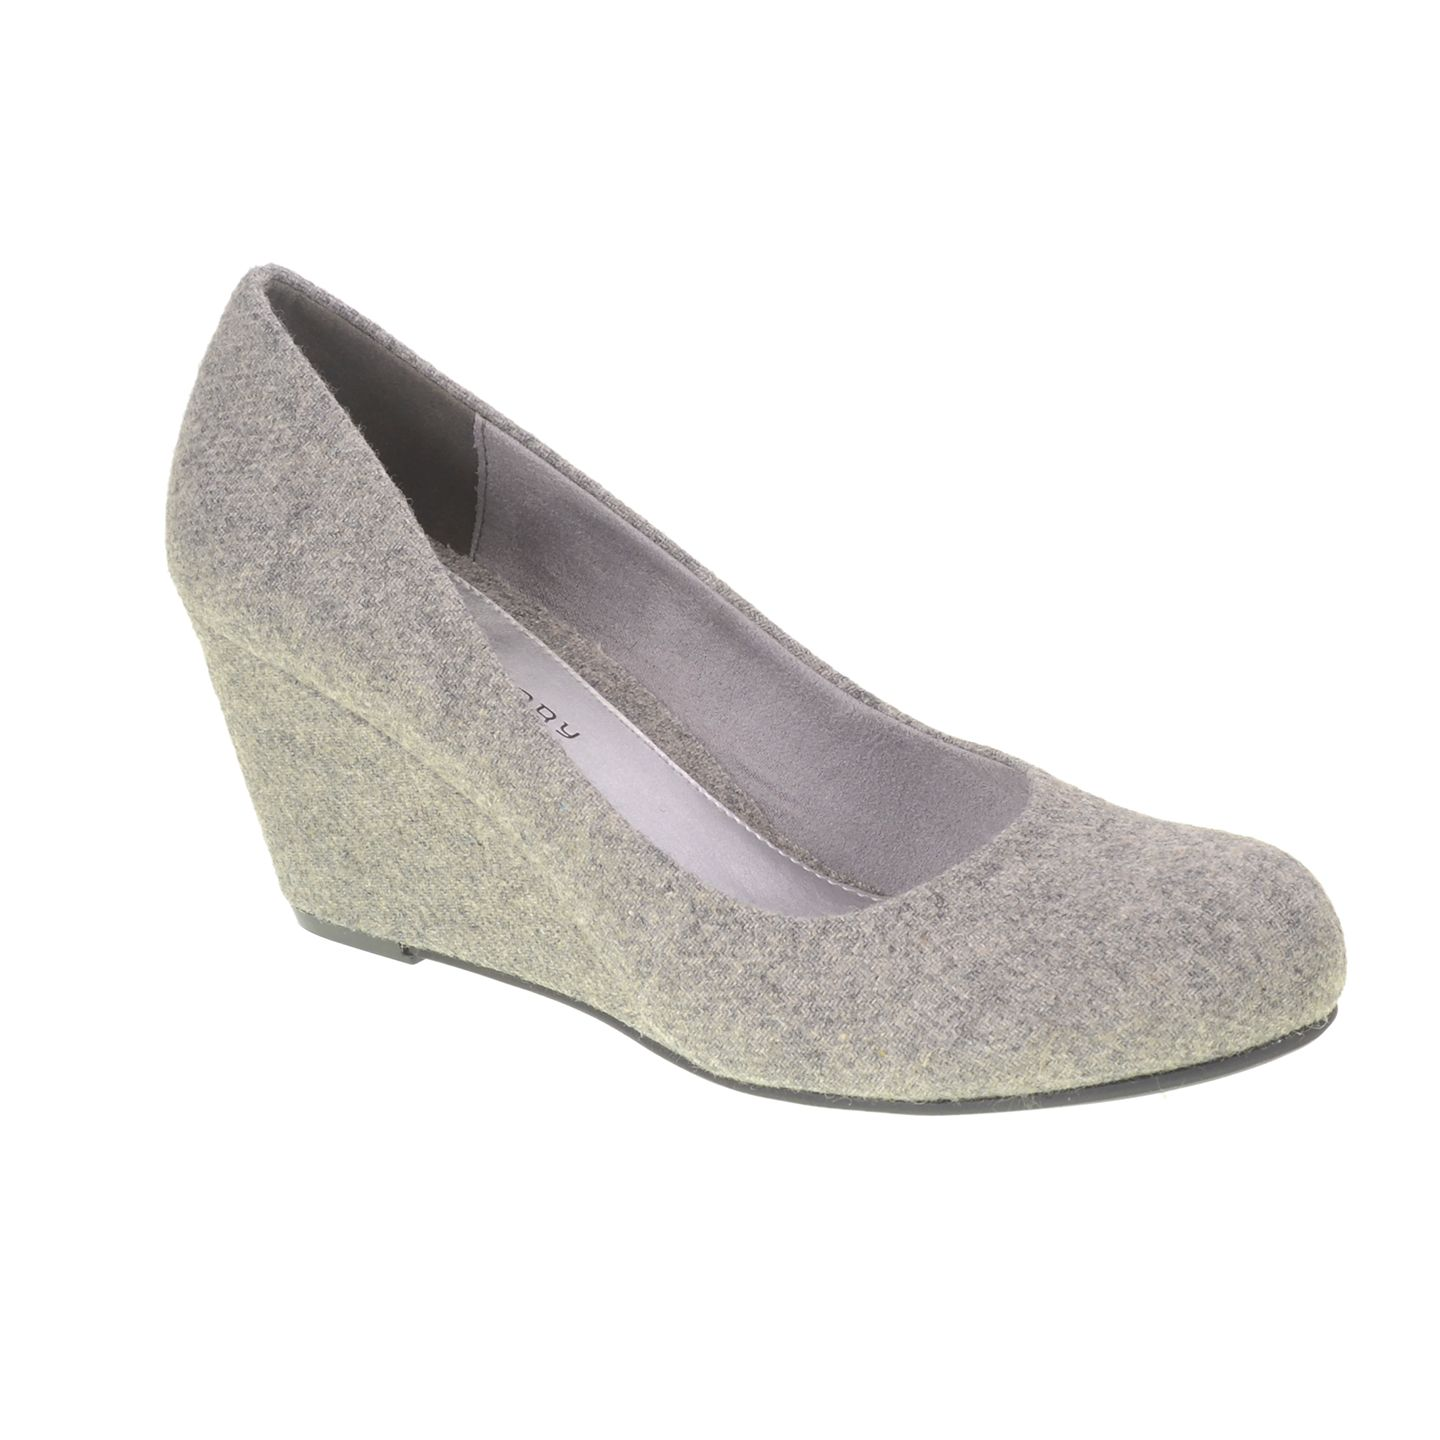 Cl By Laundry Nima Flannel Wedge Pump Grey Wedge Pumps Wedges